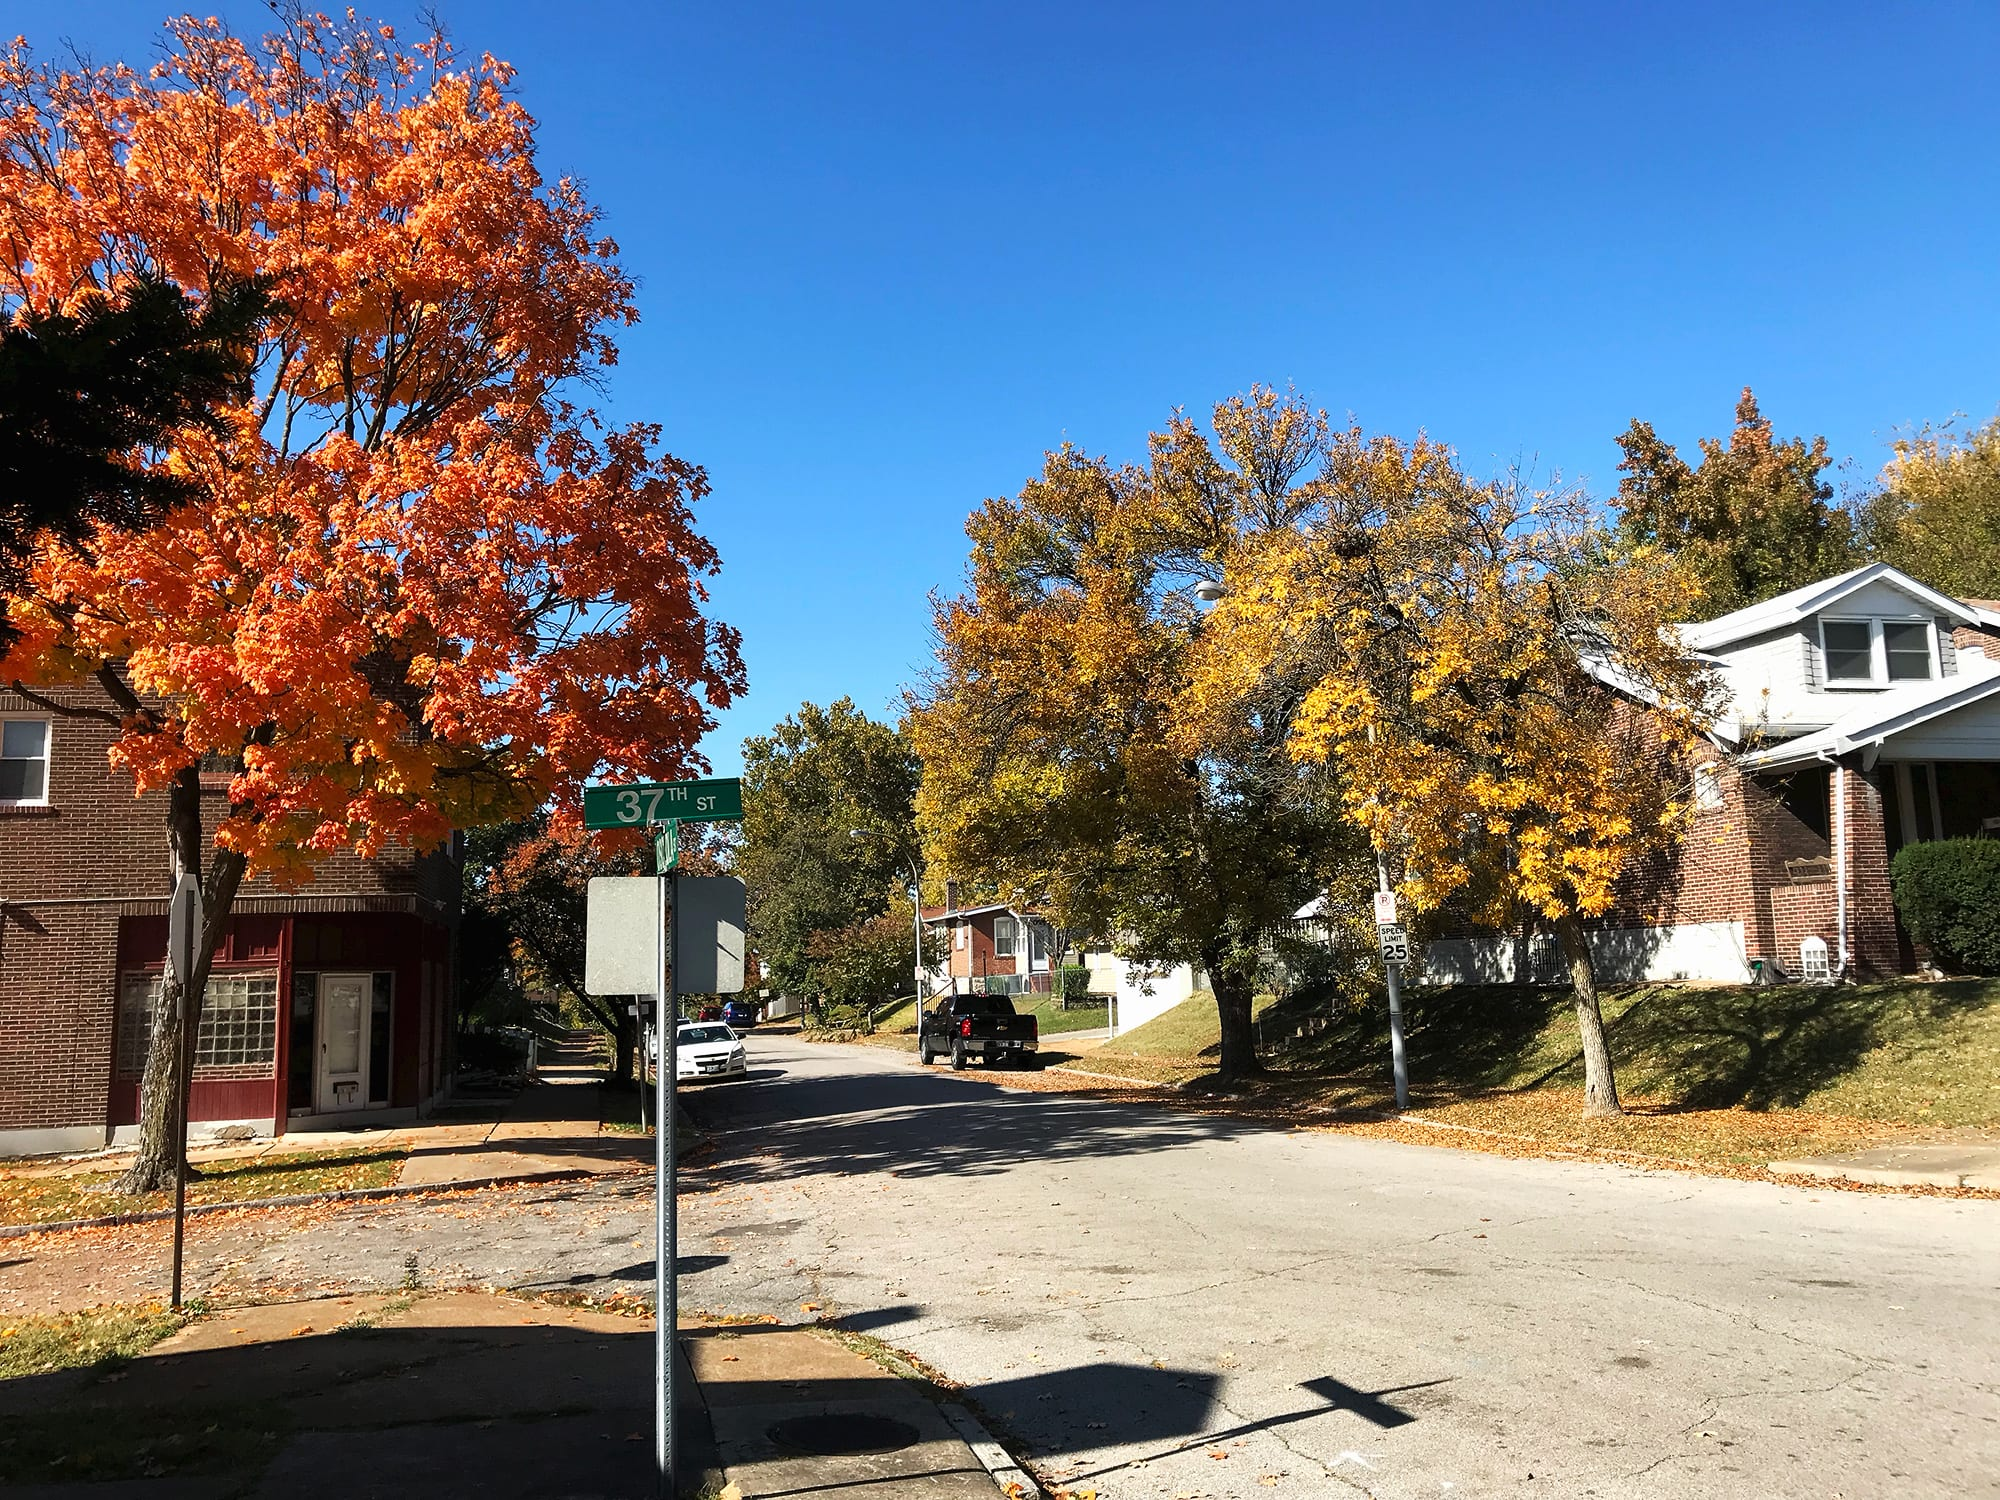 Fall foliage at Osceola and 37th in Dutchtown.